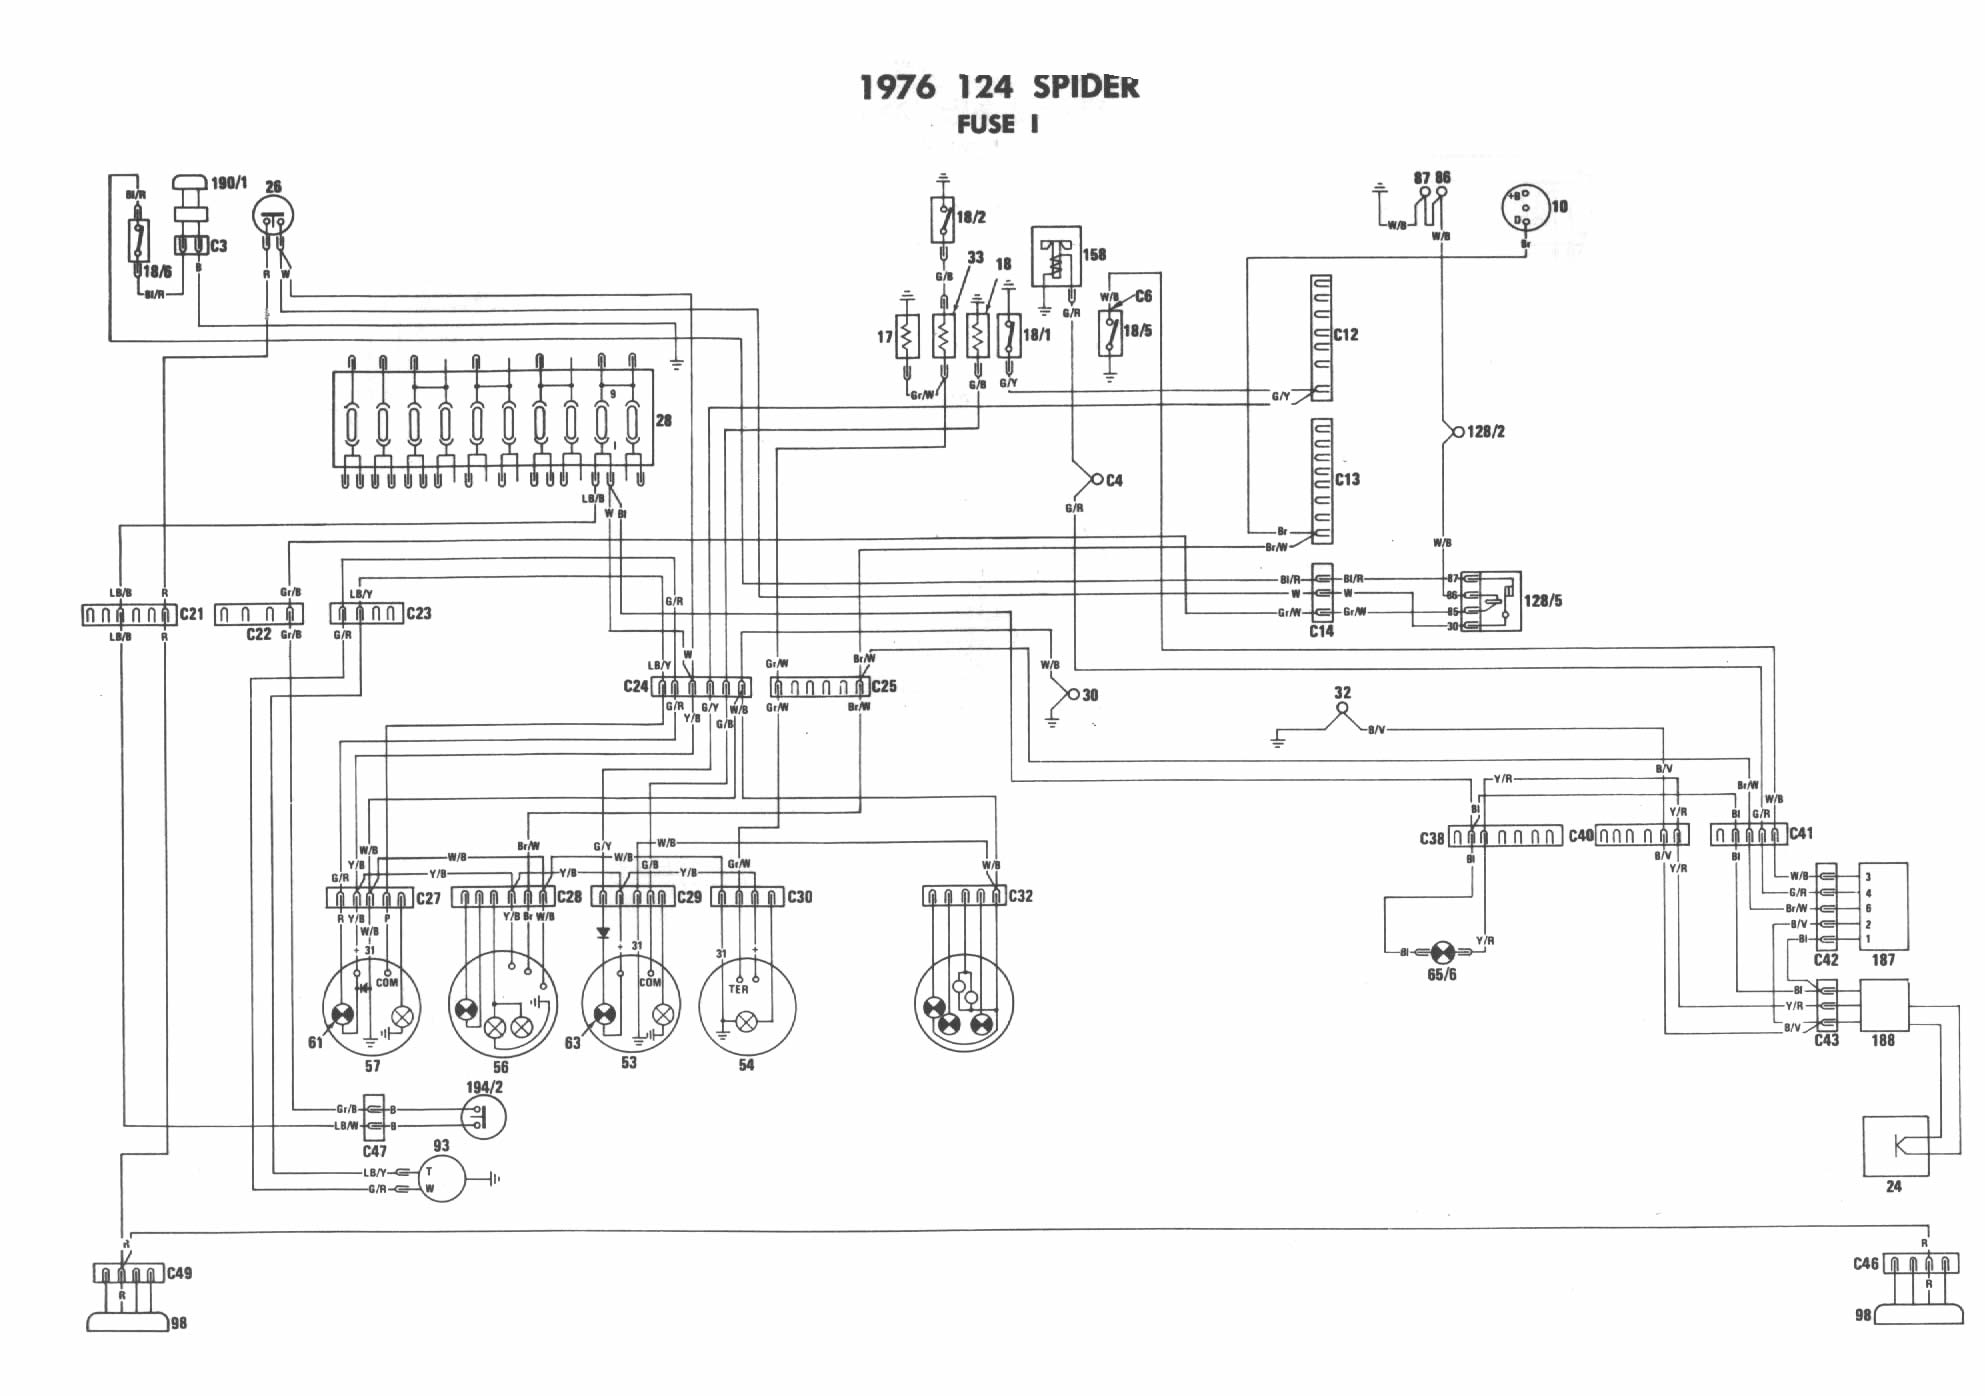 1976_7 1976 fiat spider wiring diagrams spider wire harness at eliteediting.co